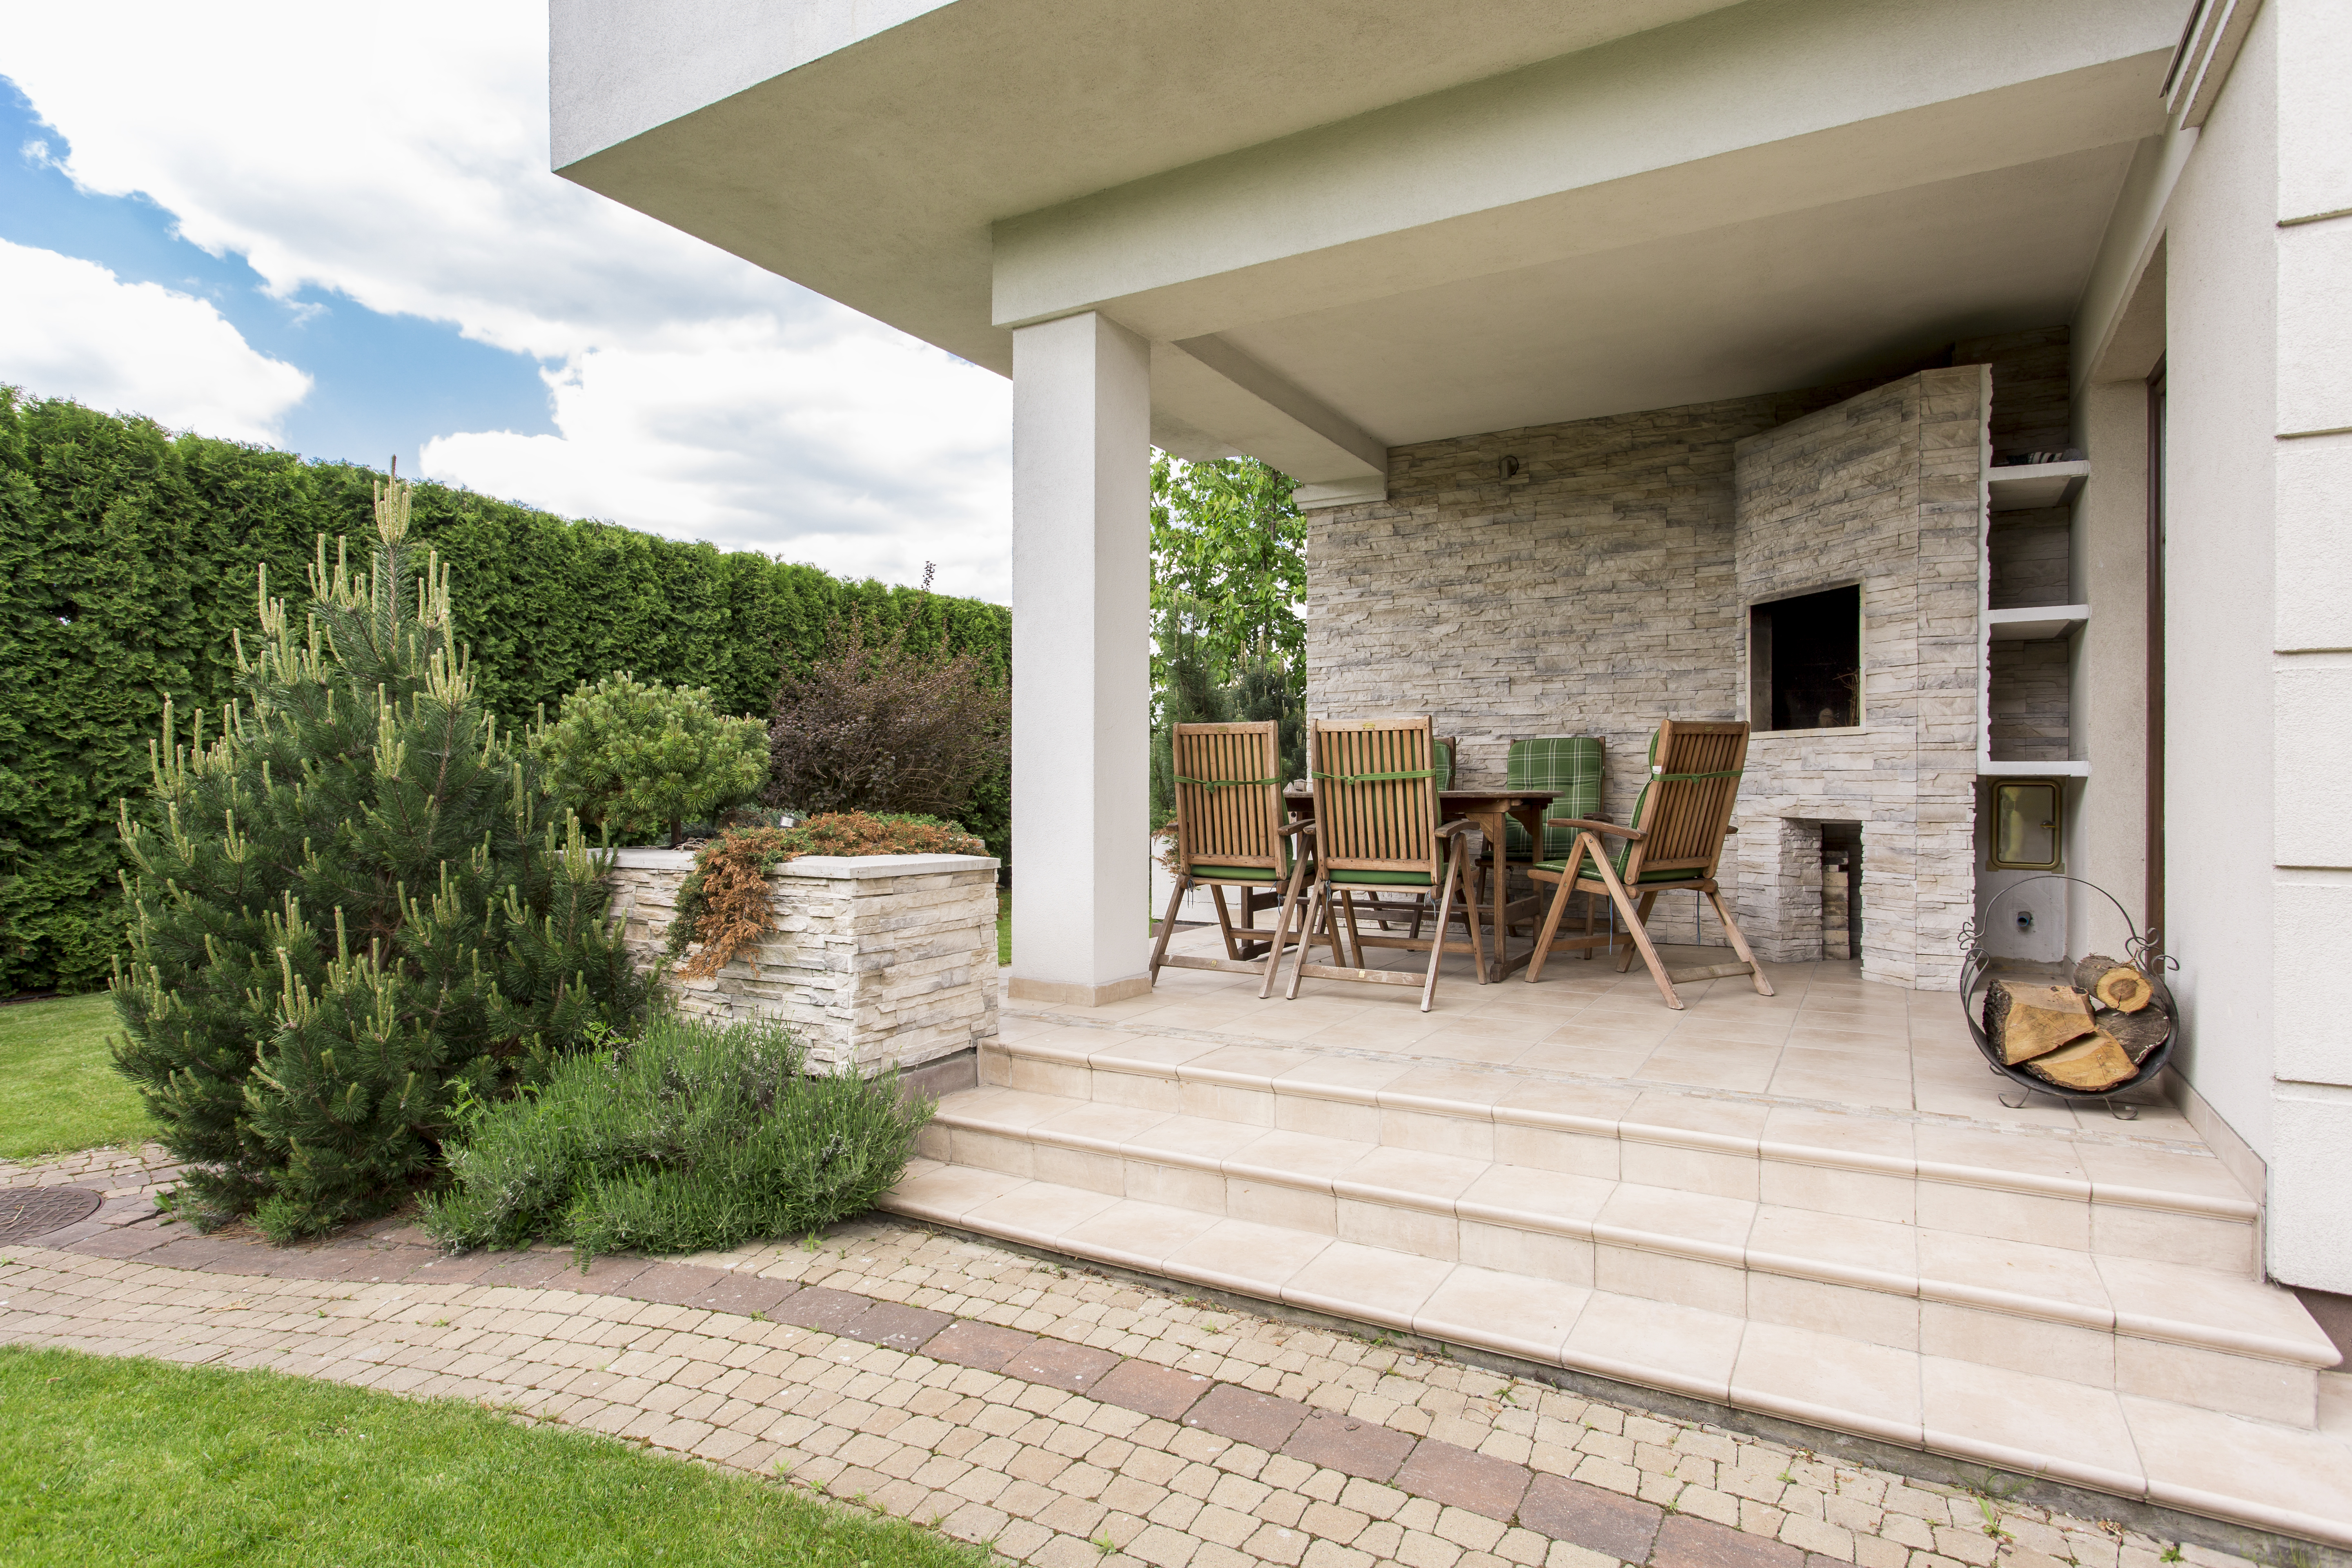 Modern house with cozy terrace and garden and beautiful paver walkway.